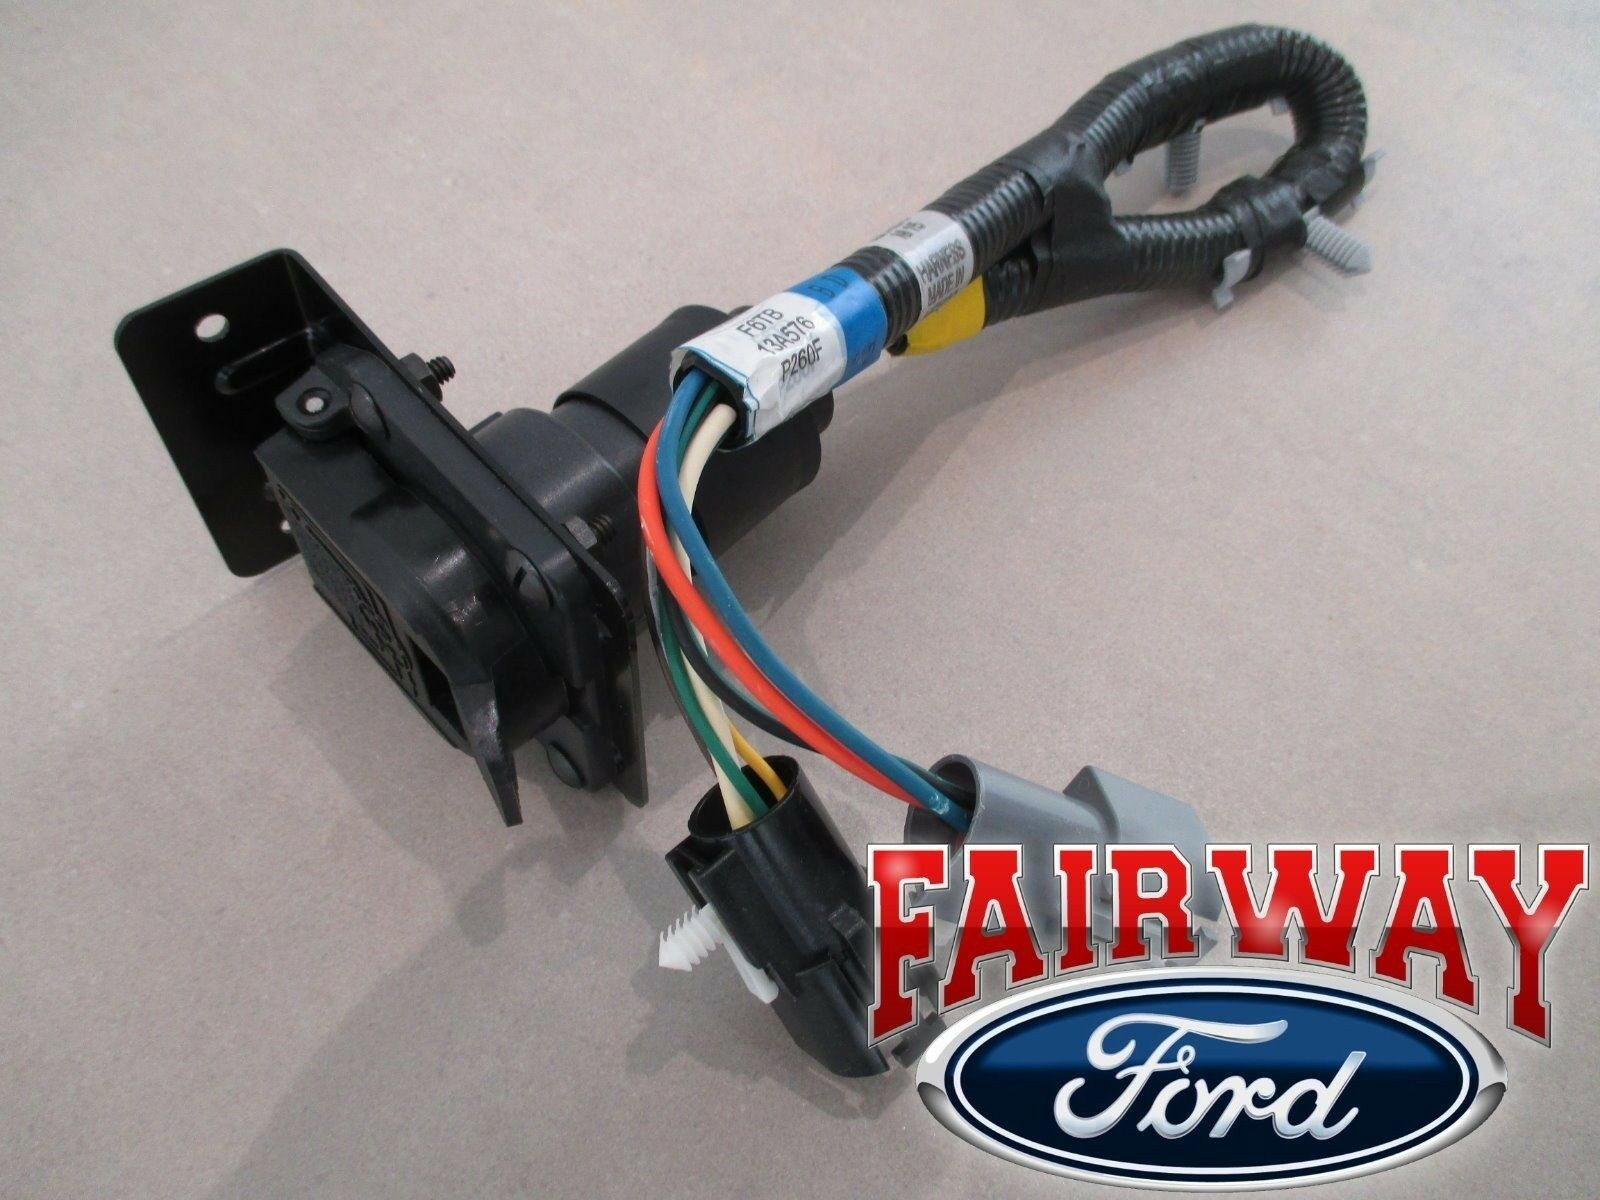 96 Bronco F 150 Oem Genuine Ford Parts Trailer Towing Wire Harness W Tow Wiring Plug 1 Of 6only 3 Available See More